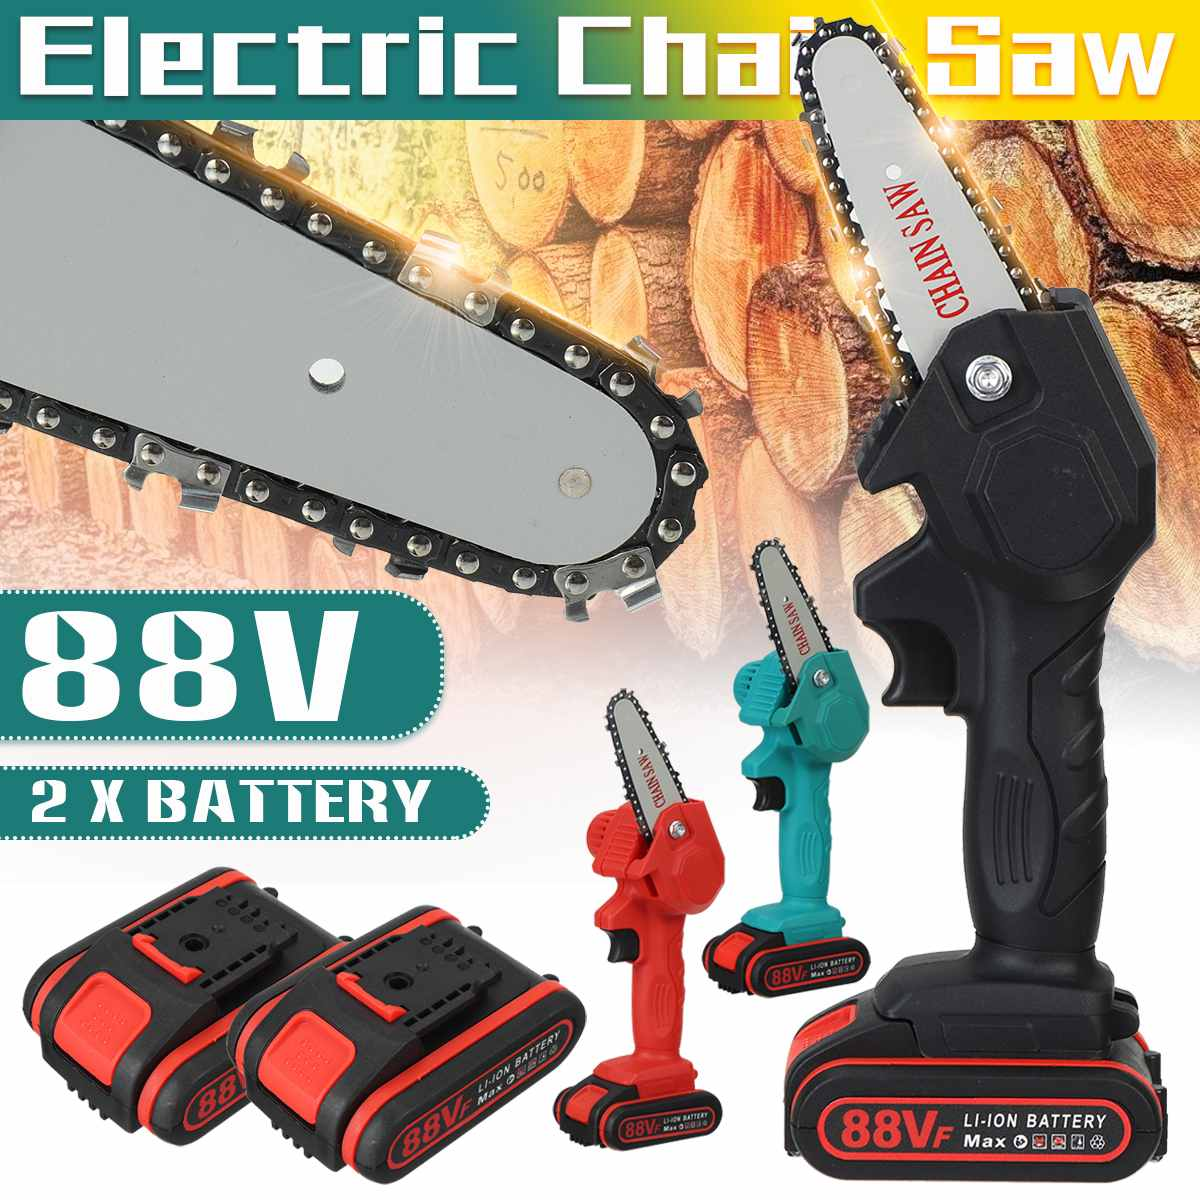 1080W 4 Inch 88V Mini Electric Chain Saw With 2PC Battery Woodworking Pruning One-handed Garden Tool Rechargeable EU Plug